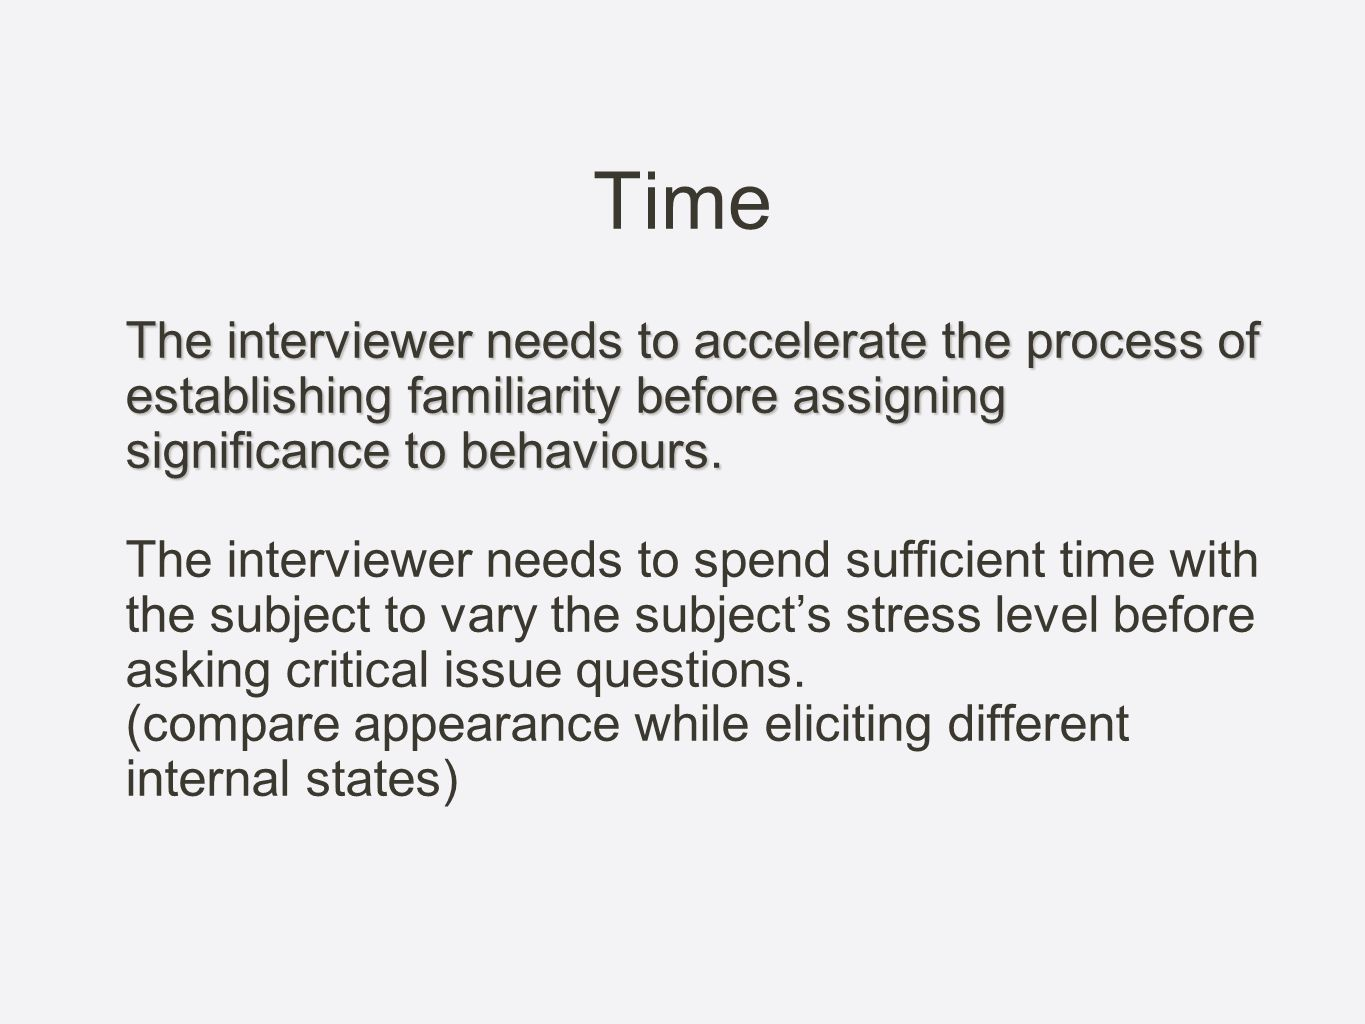 Time The interviewer needs to accelerate the process of establishing familiarity before assigning significance to behaviours.